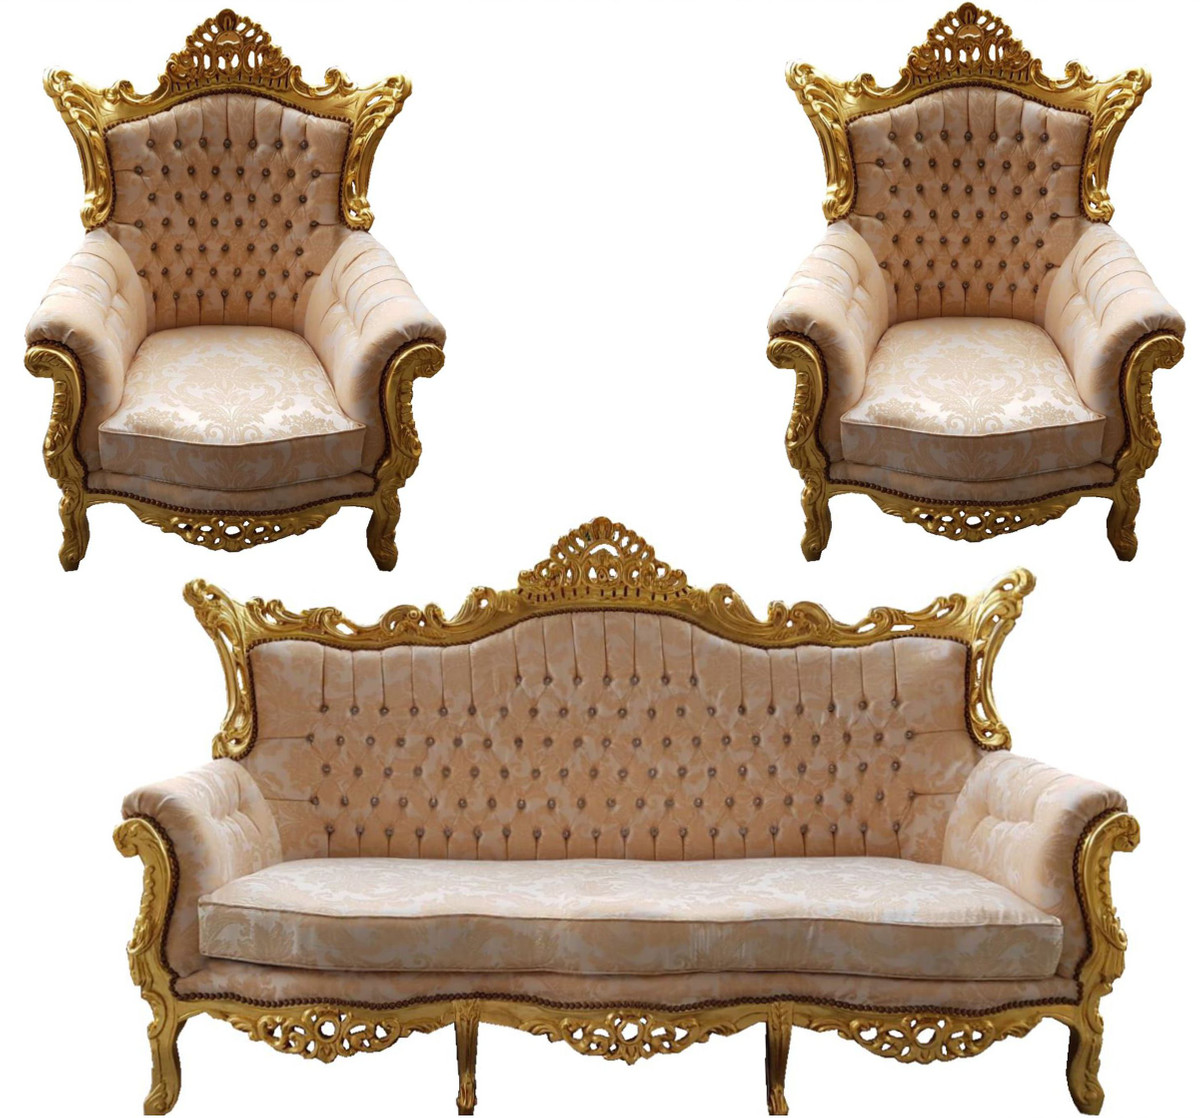 Casa Padrino Baroque Living Room Set Master Cream Pattern / Gold With Bling  Bling Rhinestones